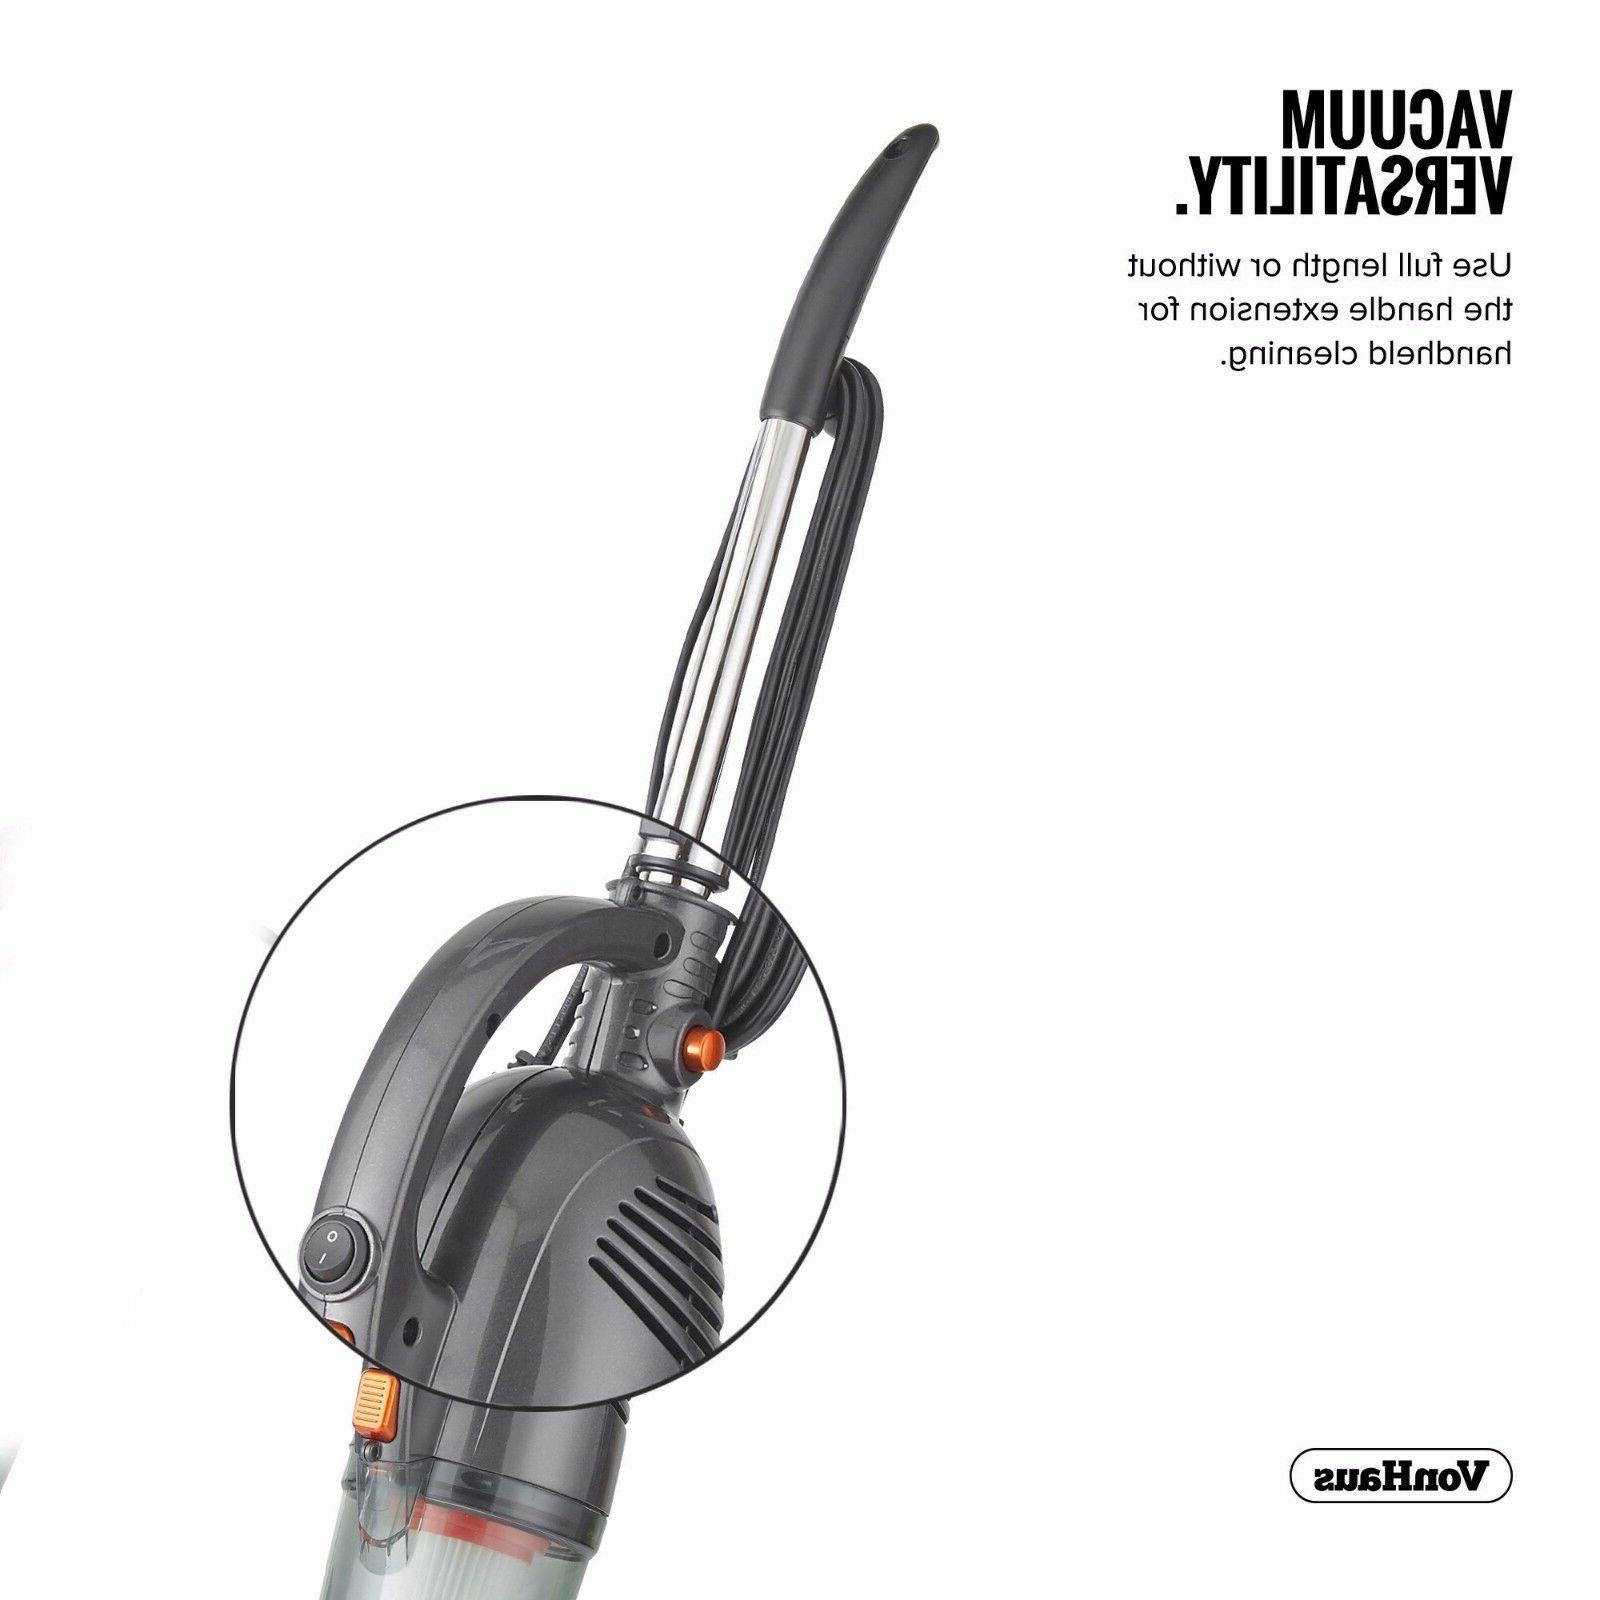 VonHaus 2 in 1 Corded Handheld Cleaner Bagless Upright